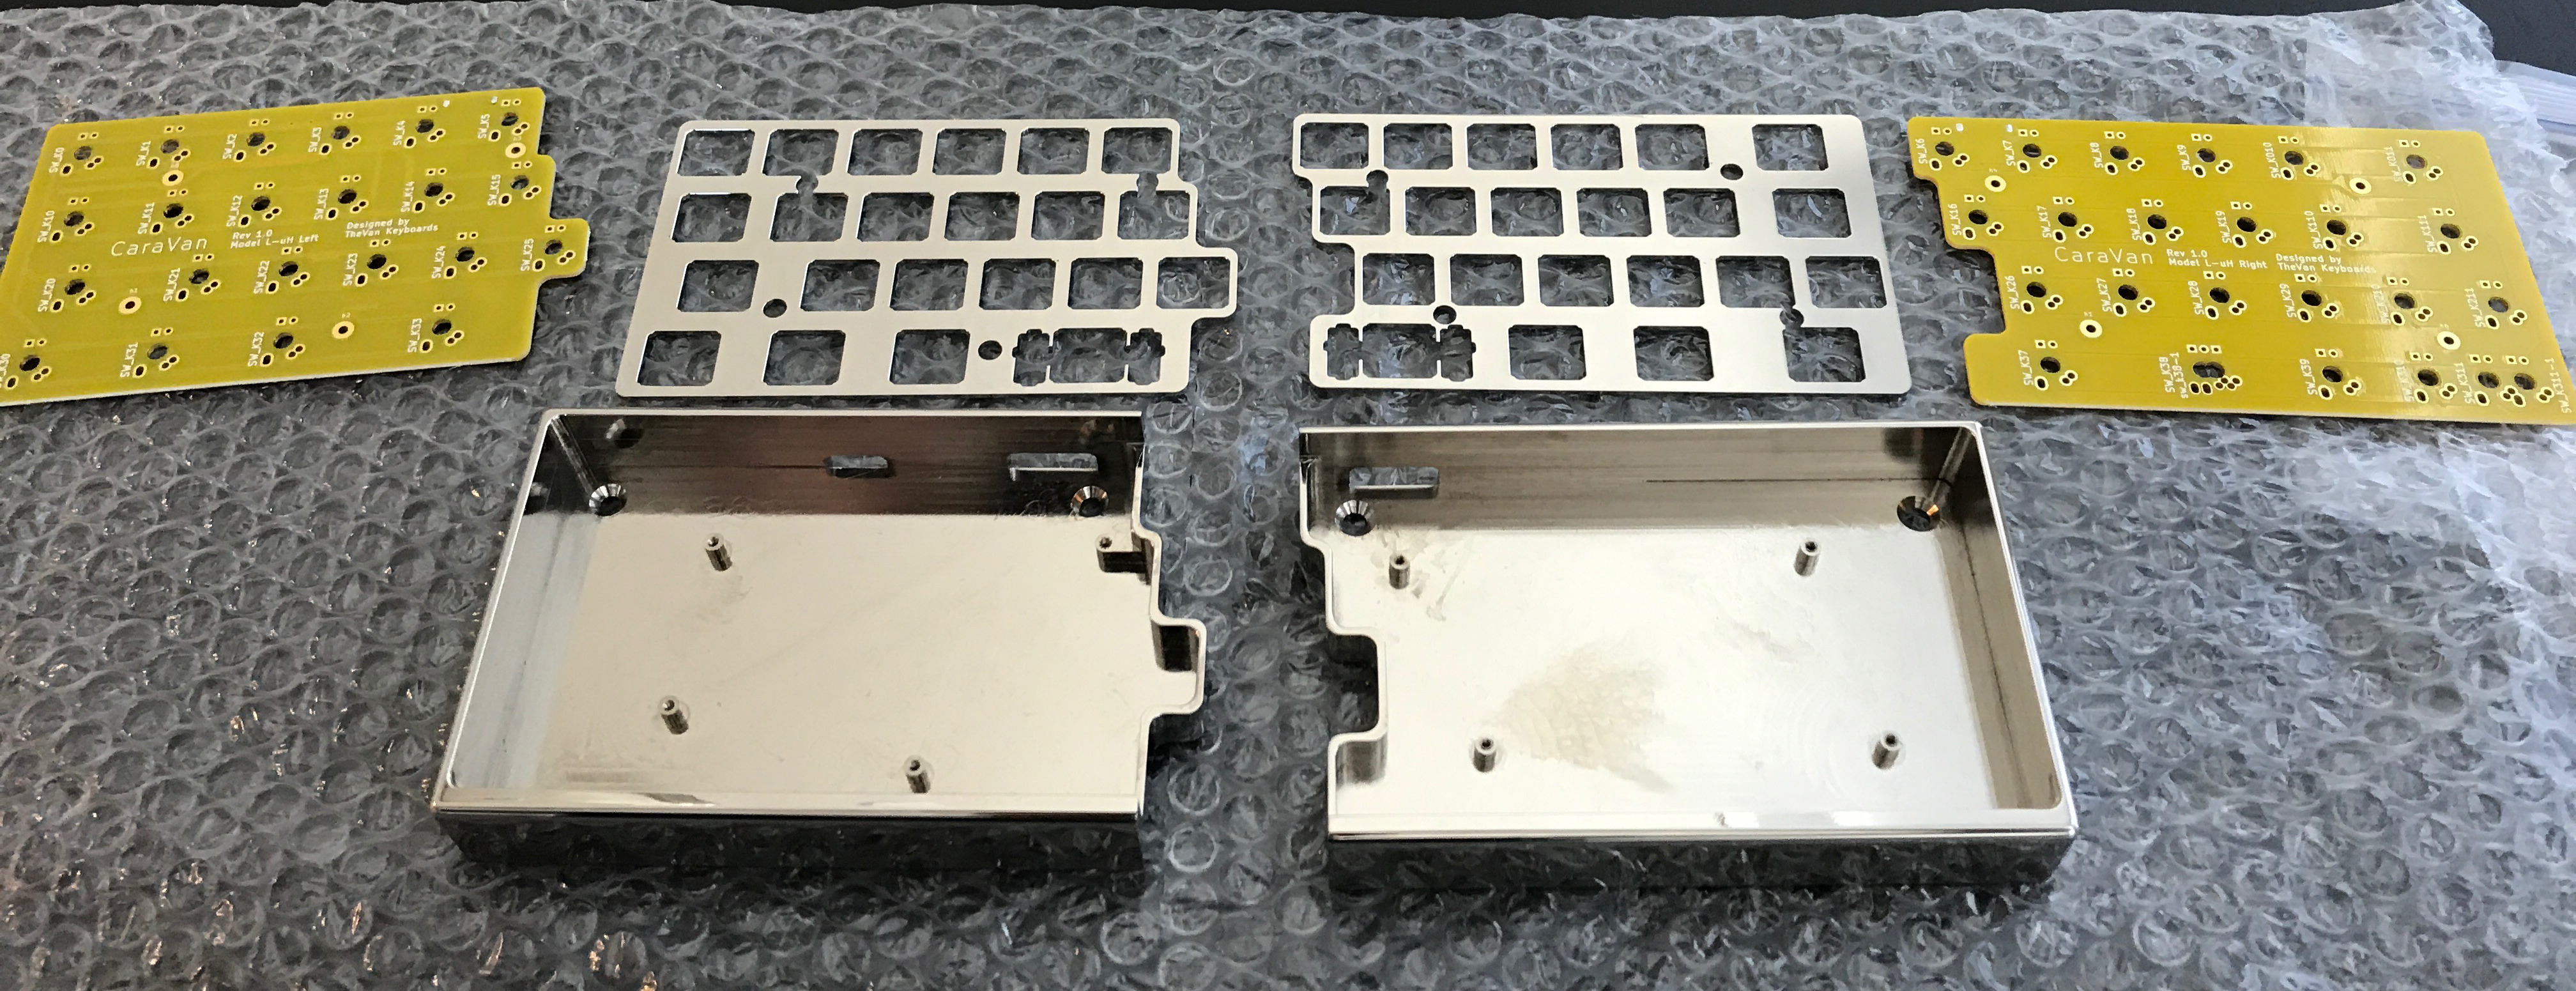 Unassembled CaraVan kit showing plates, cases, and top side of PCBs